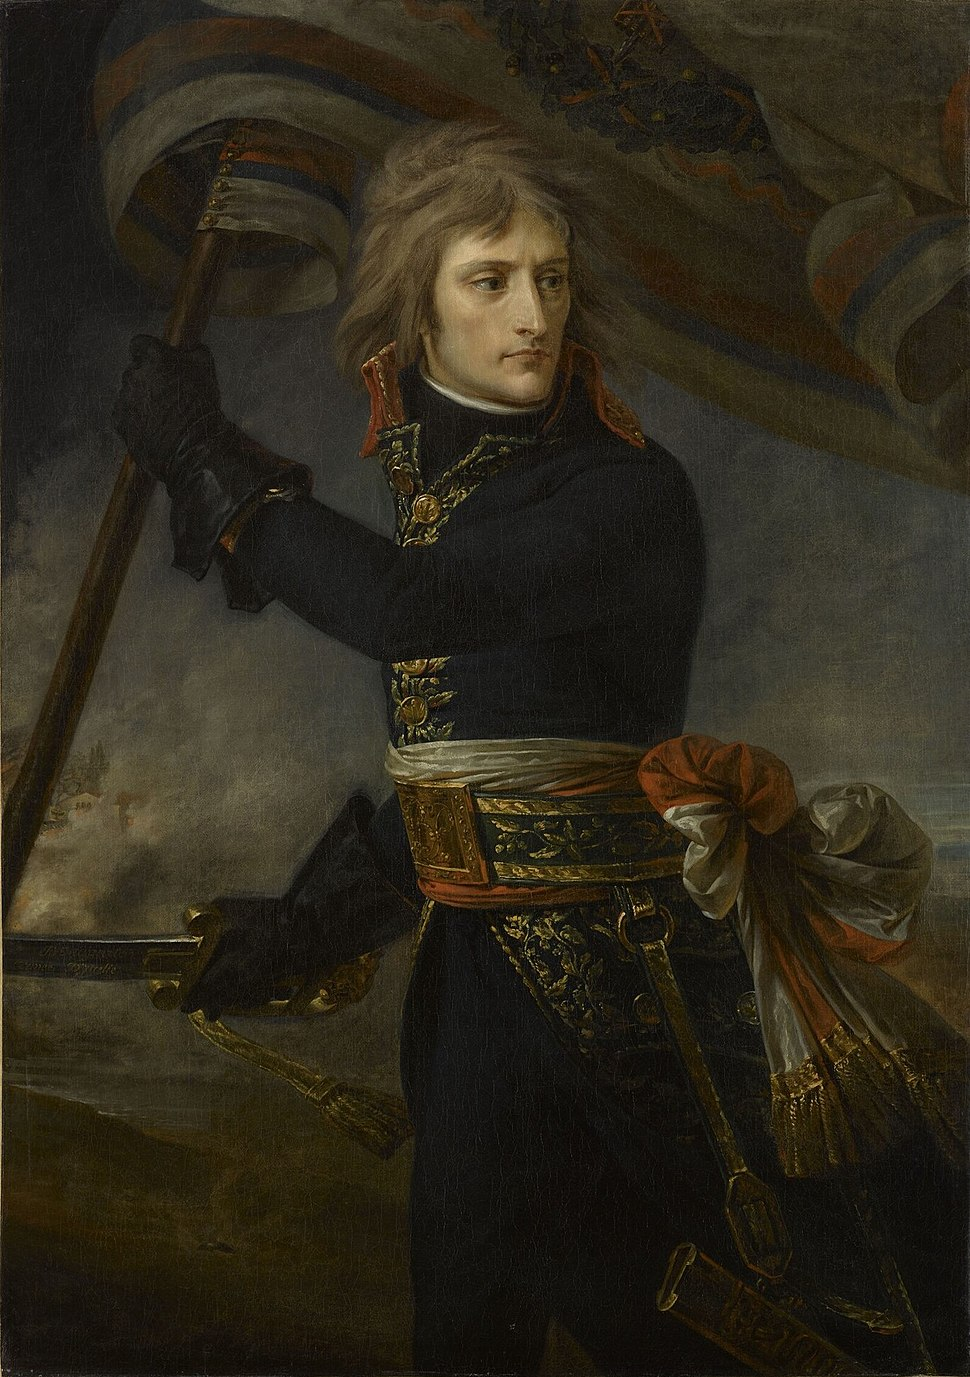 1801 Antoine-Jean Gros - Bonaparte on the Bridge at Arcole